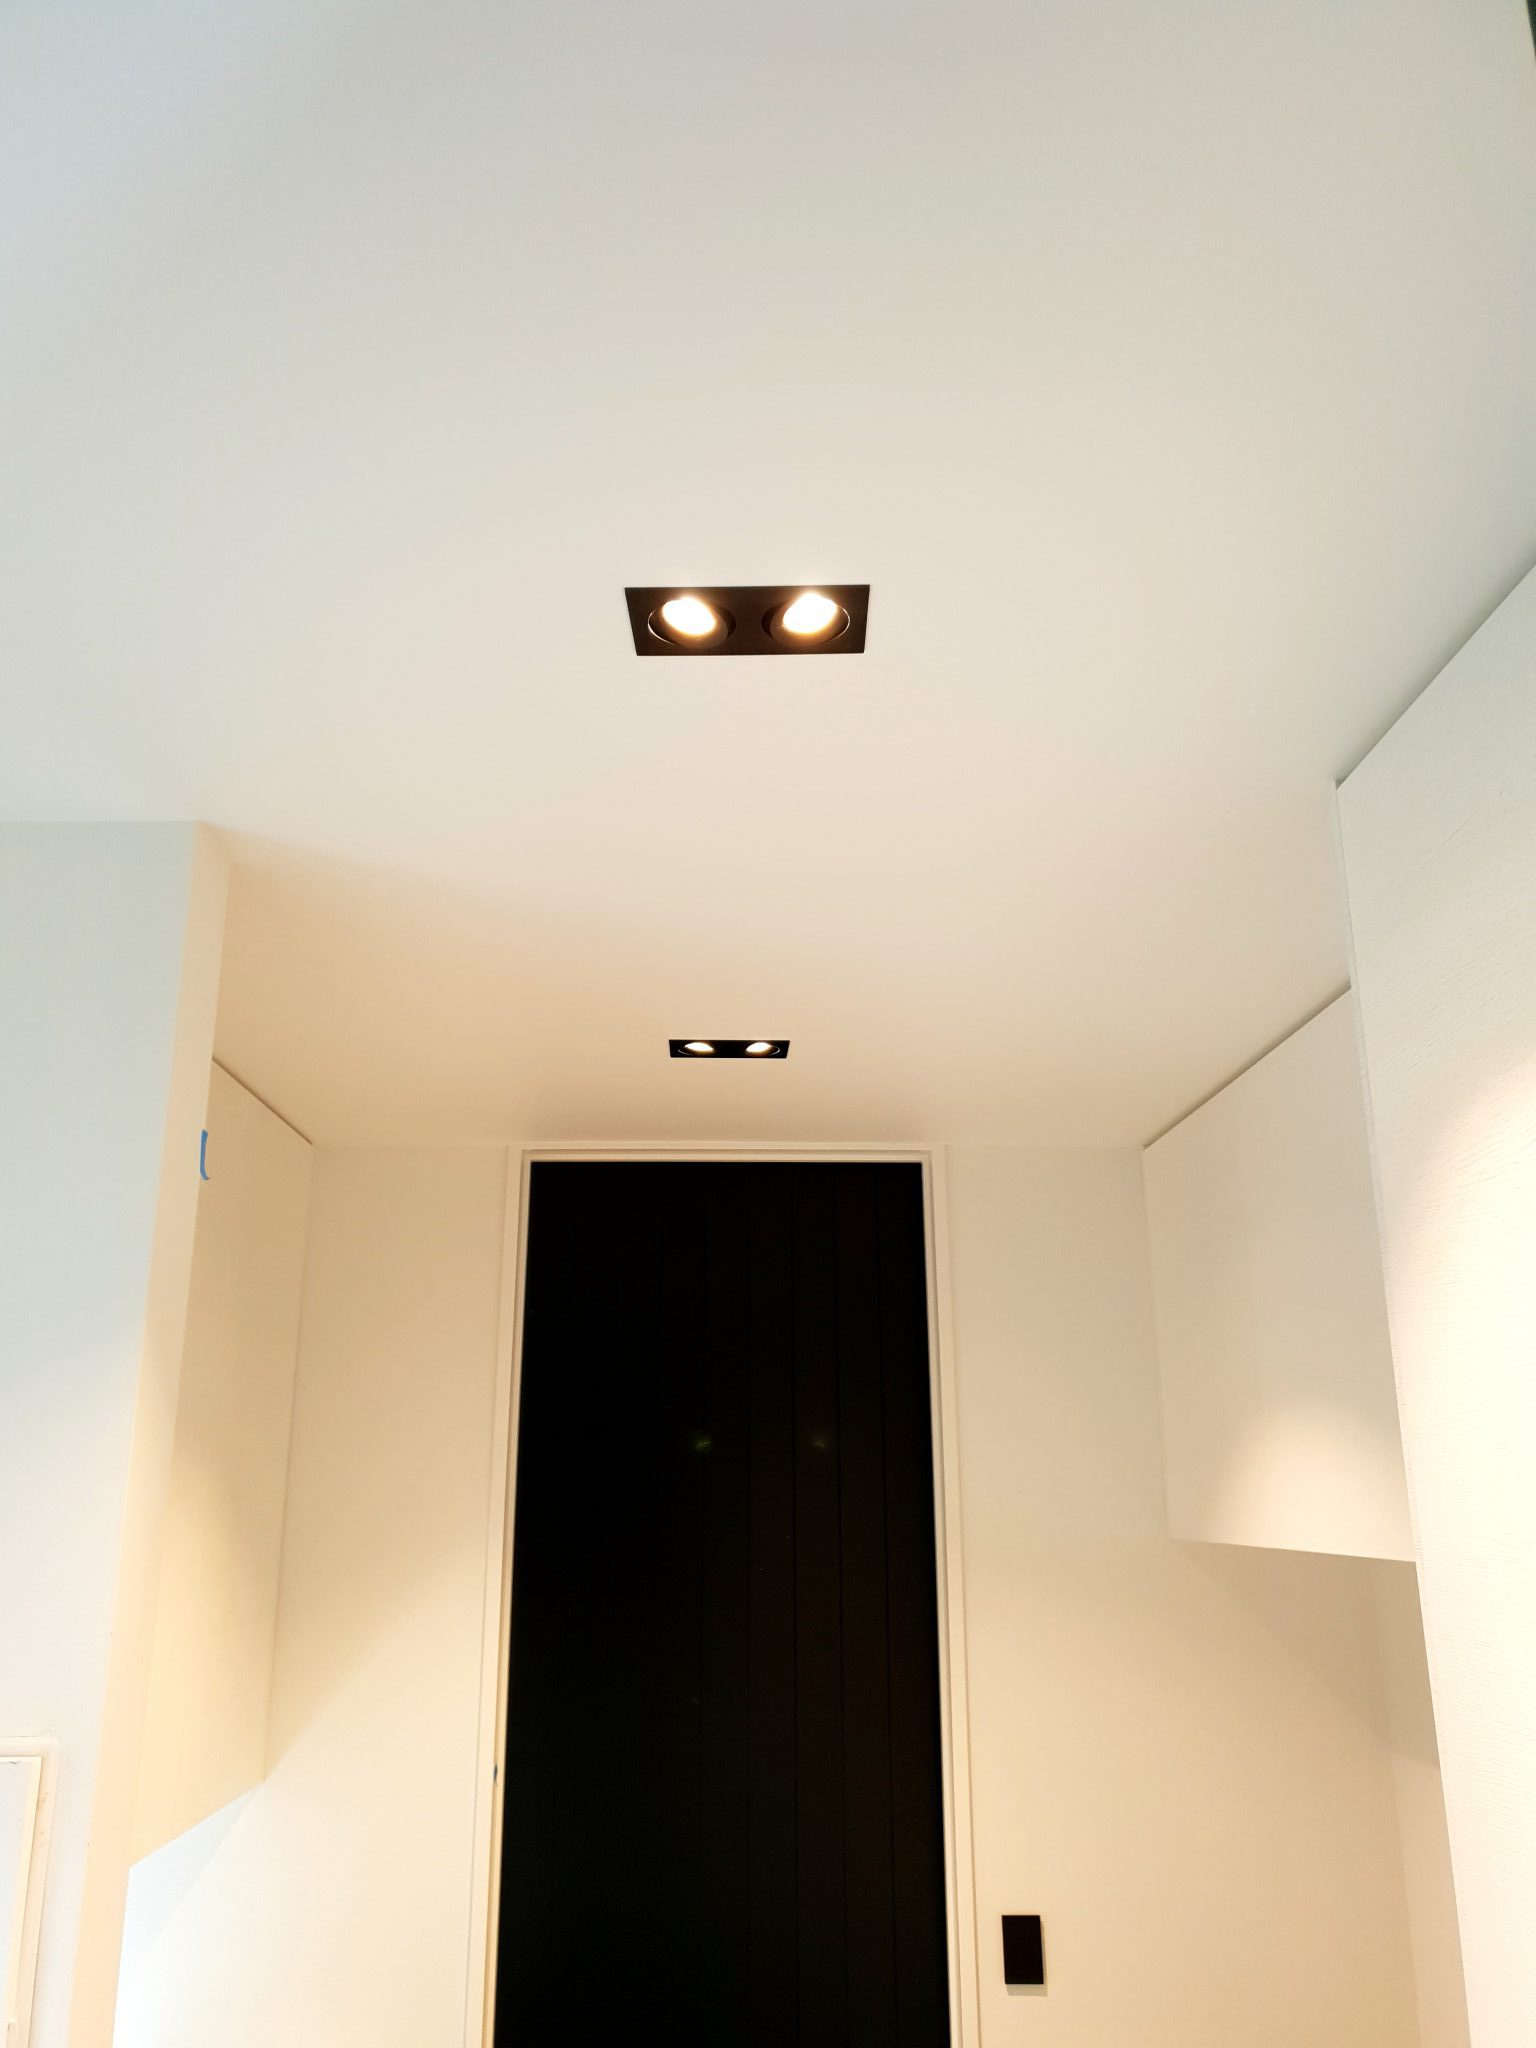 Recessed double downlights